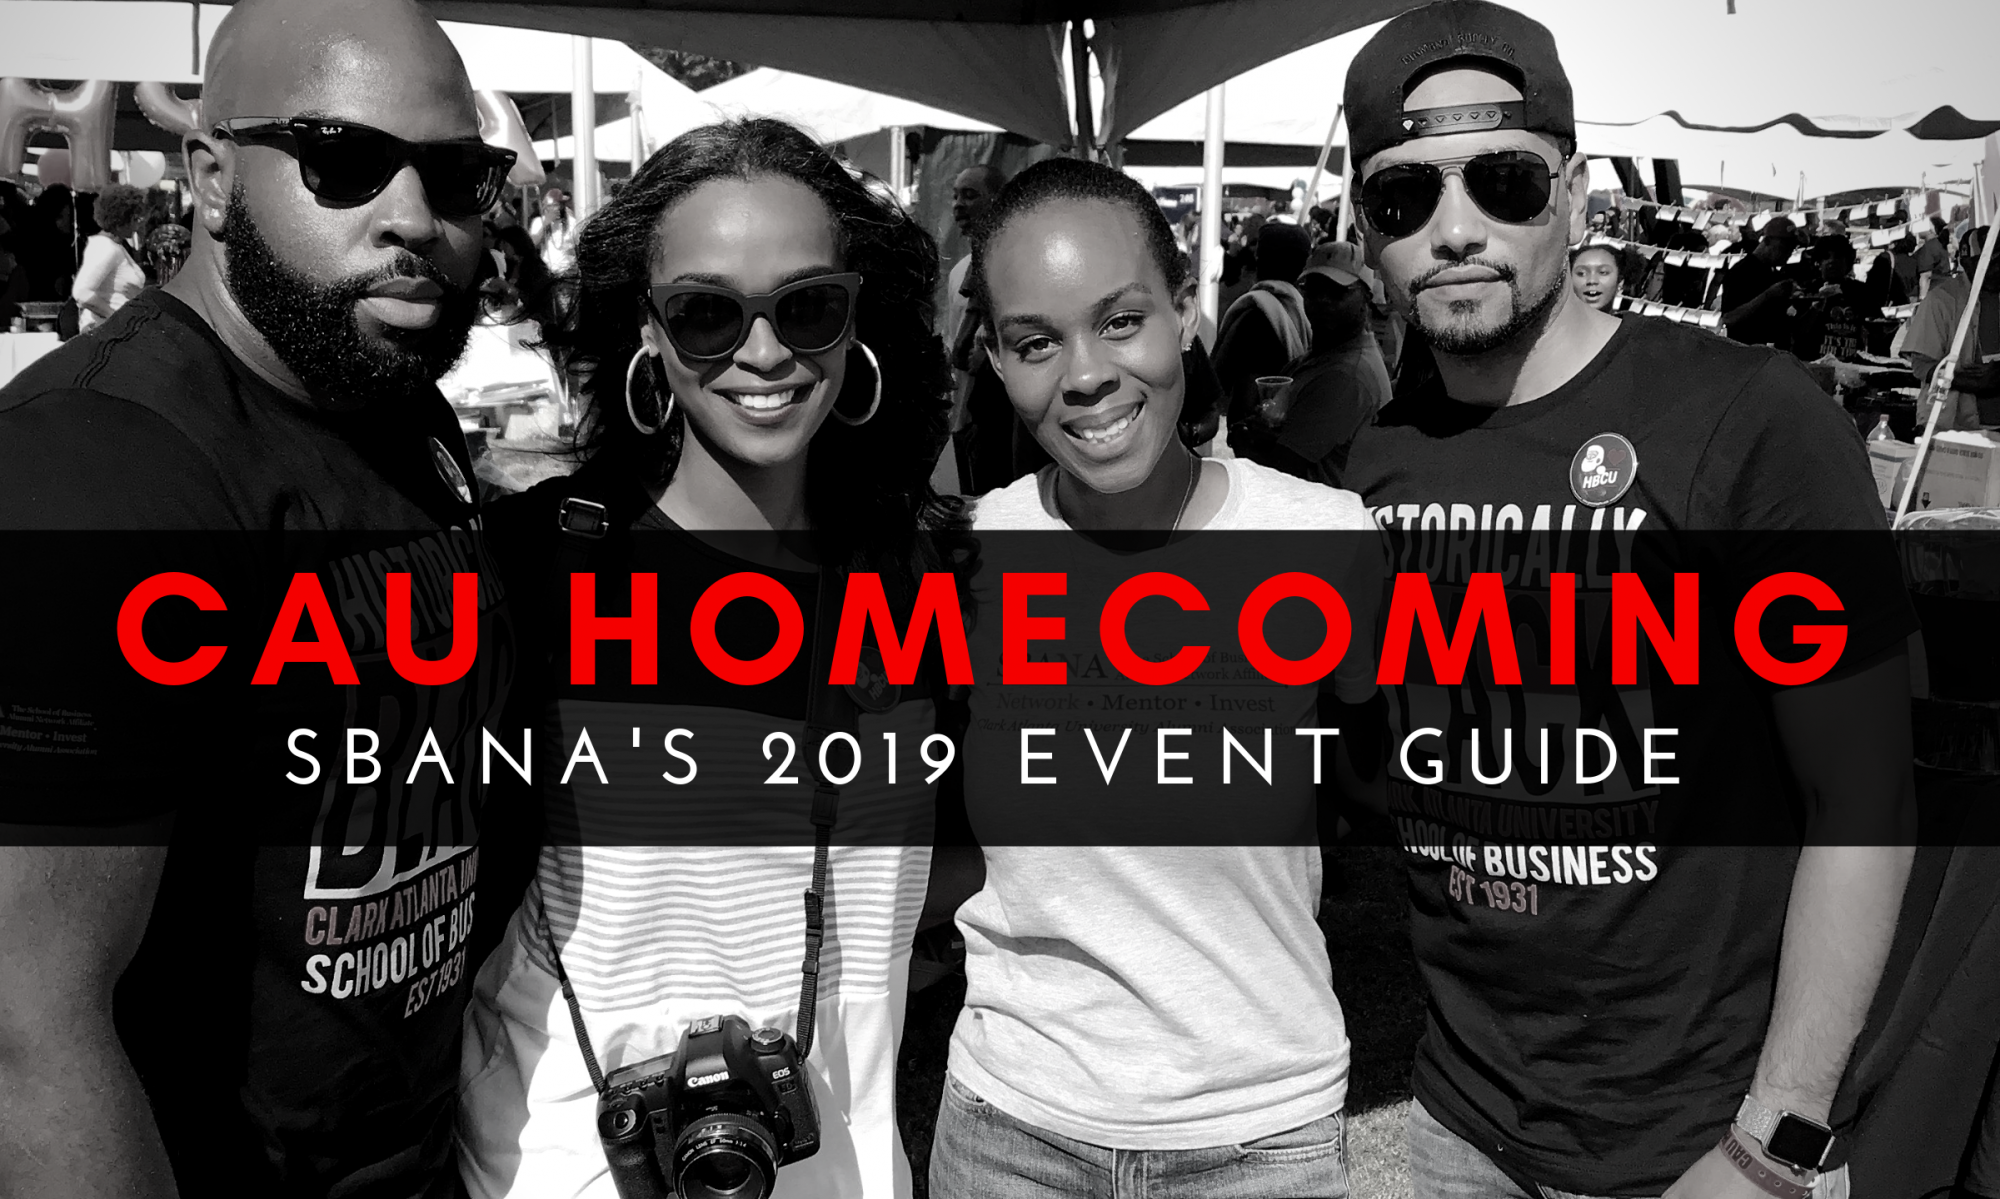 CAU HOMECOMING